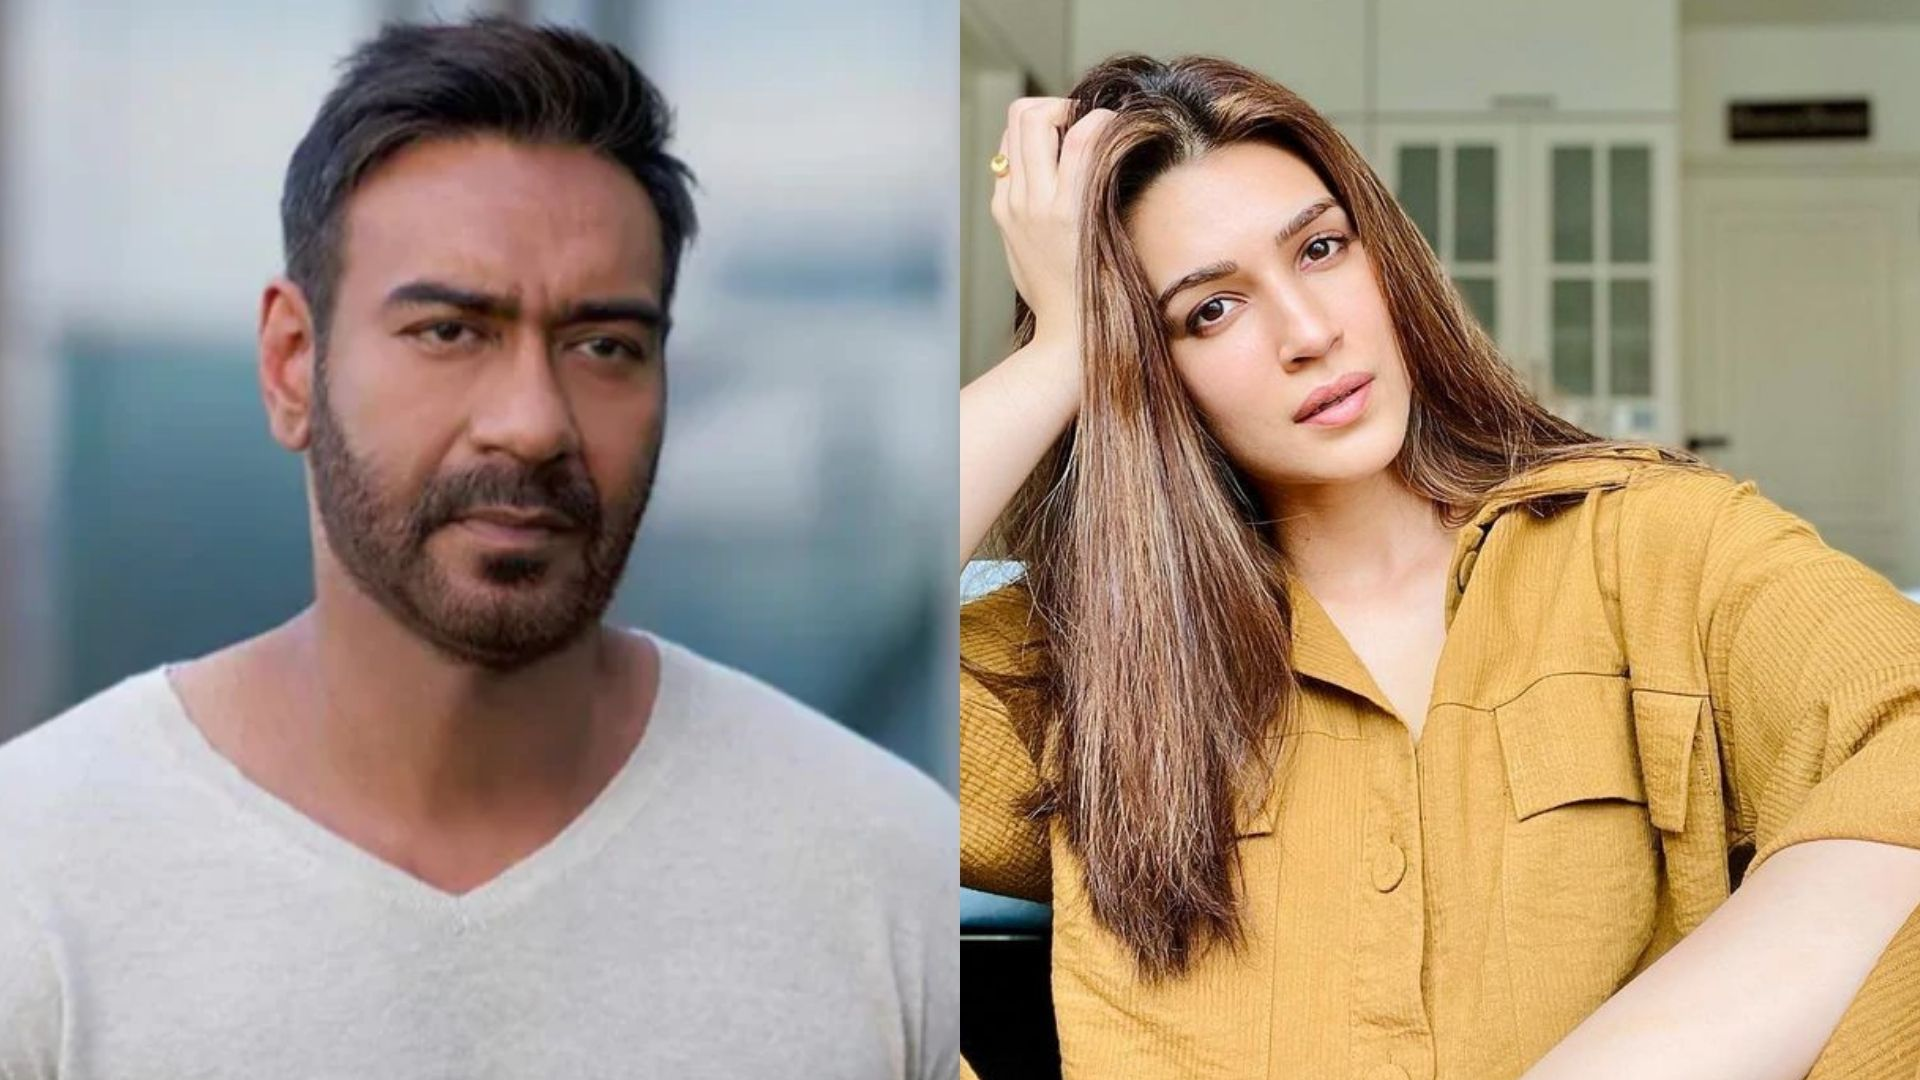 Ajay Devgn To Kriti Sanon- Bollywood Stars Who Have Stayed Away From Controversies